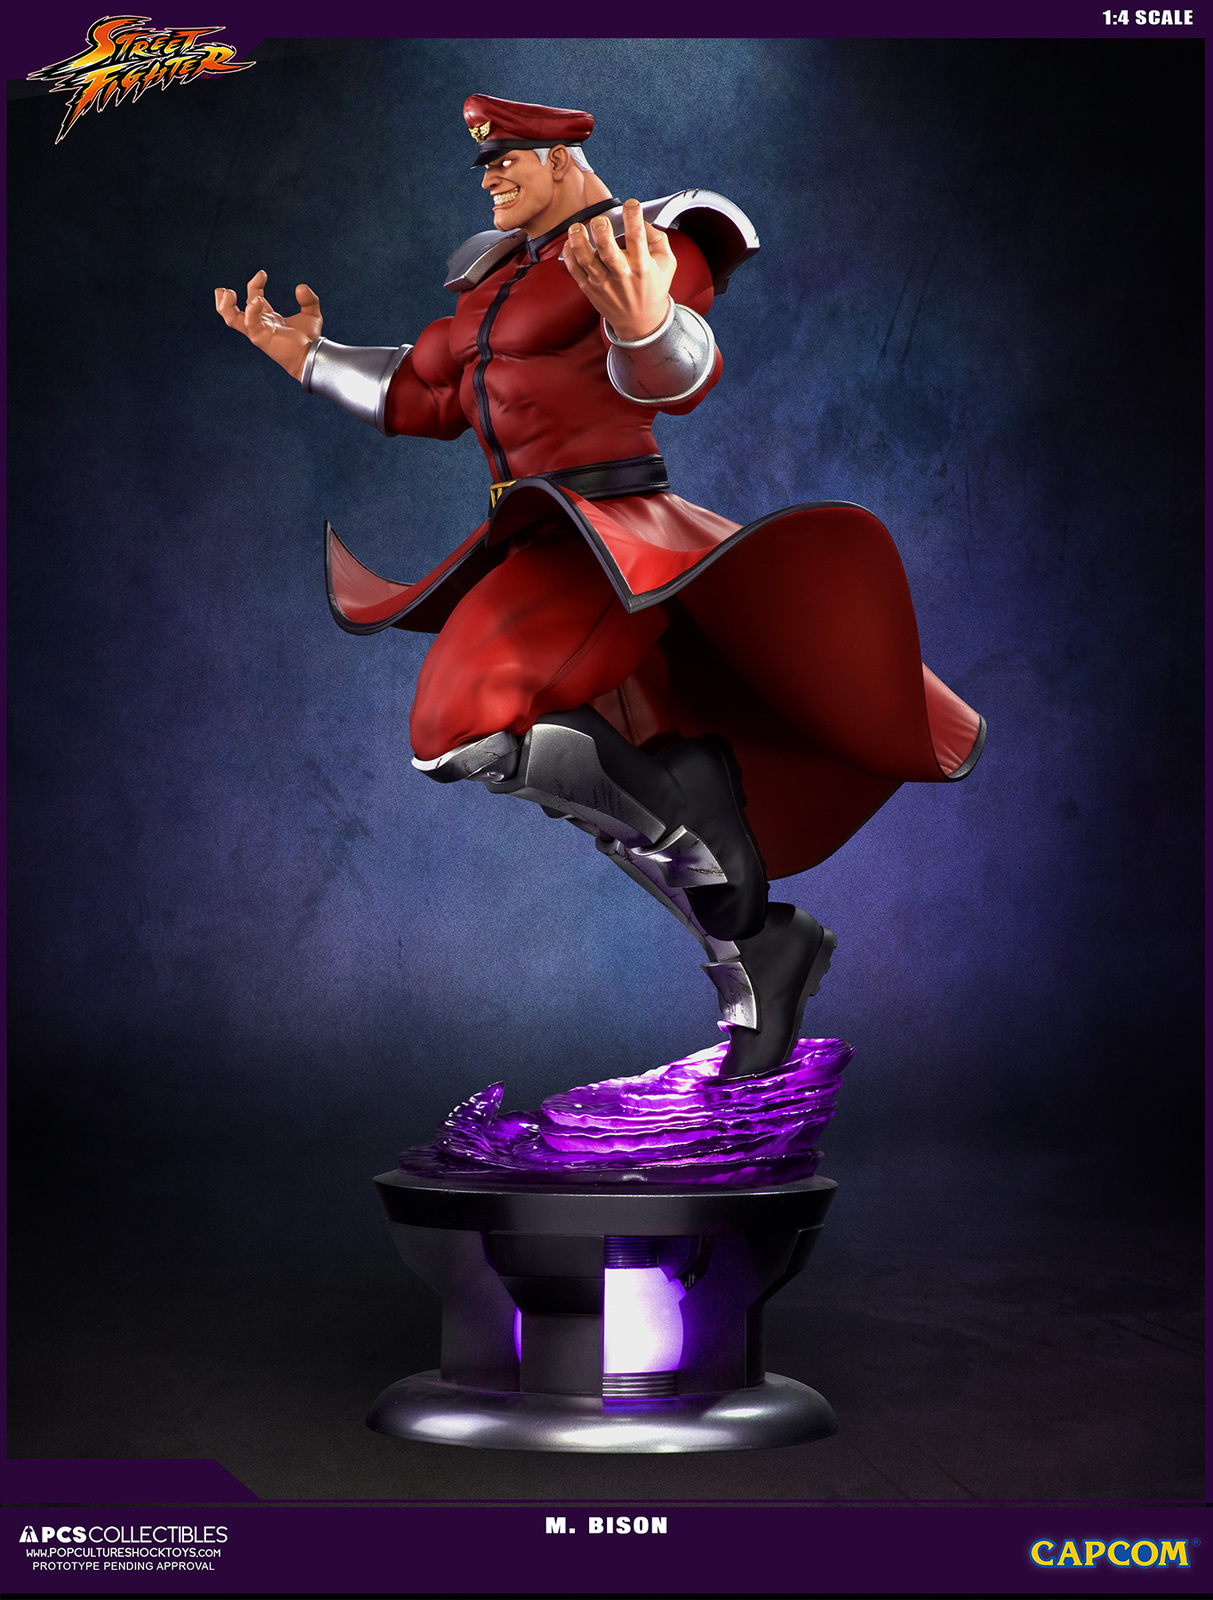 Streetfighter V - M Bison 1:4 Scale Statue image